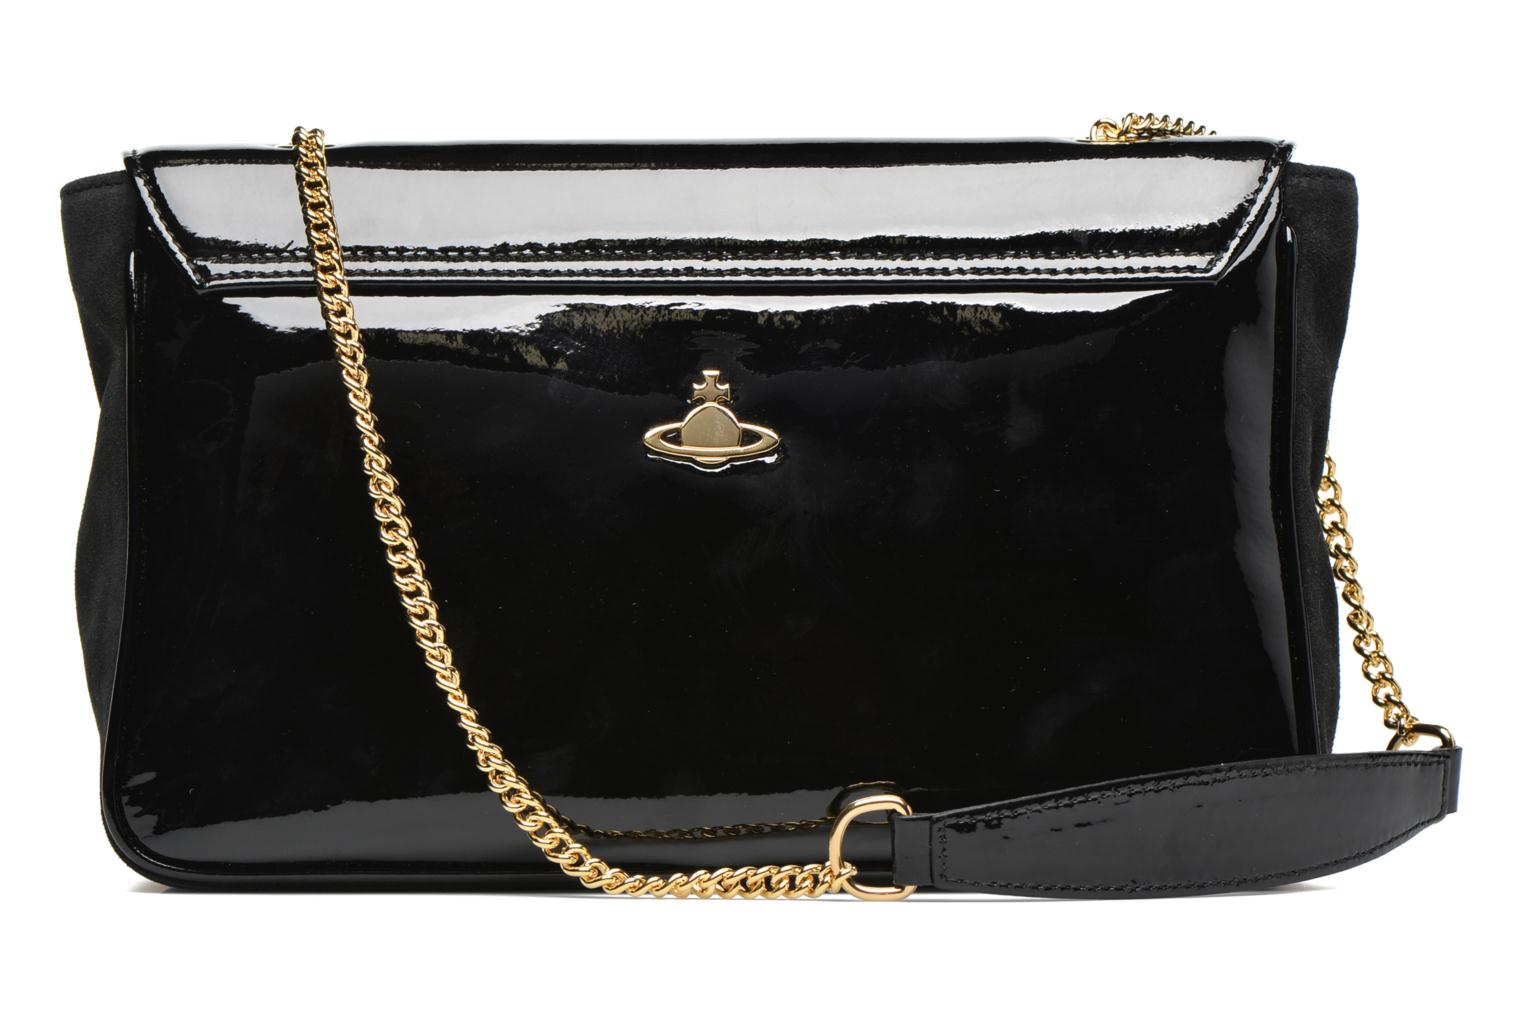 Sacs à main Vivienne Westwood MIRROR BALL Shoulder bag Noir vue face